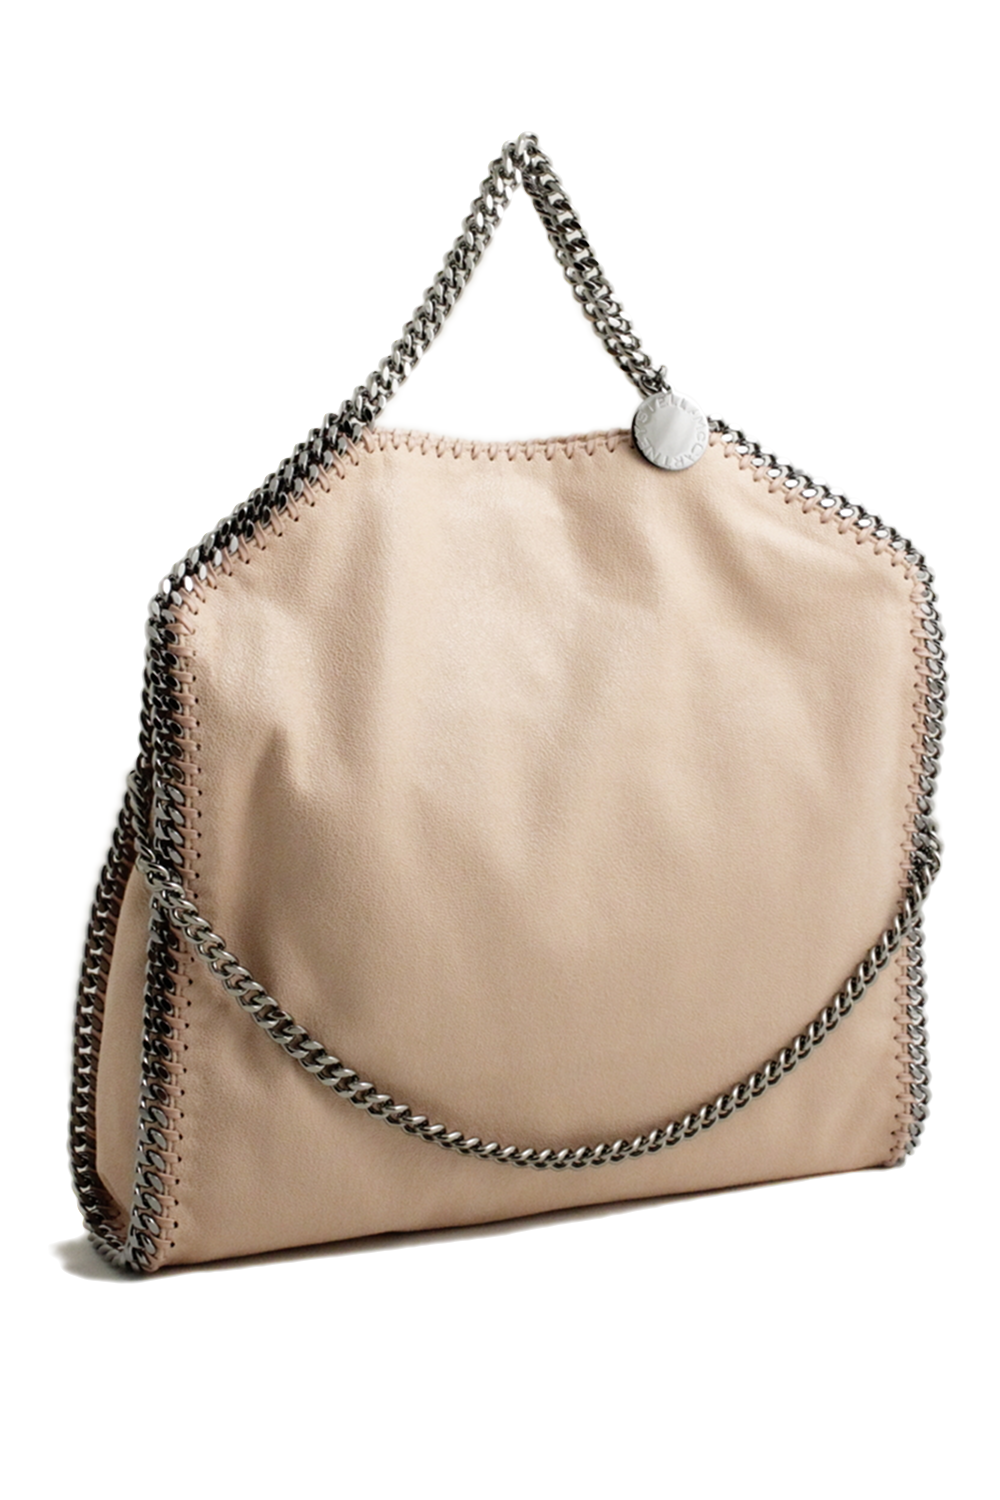 Stella McCartney falabella three chain poudre tote bag Stella McCartney shop  online bceccaee52bb4